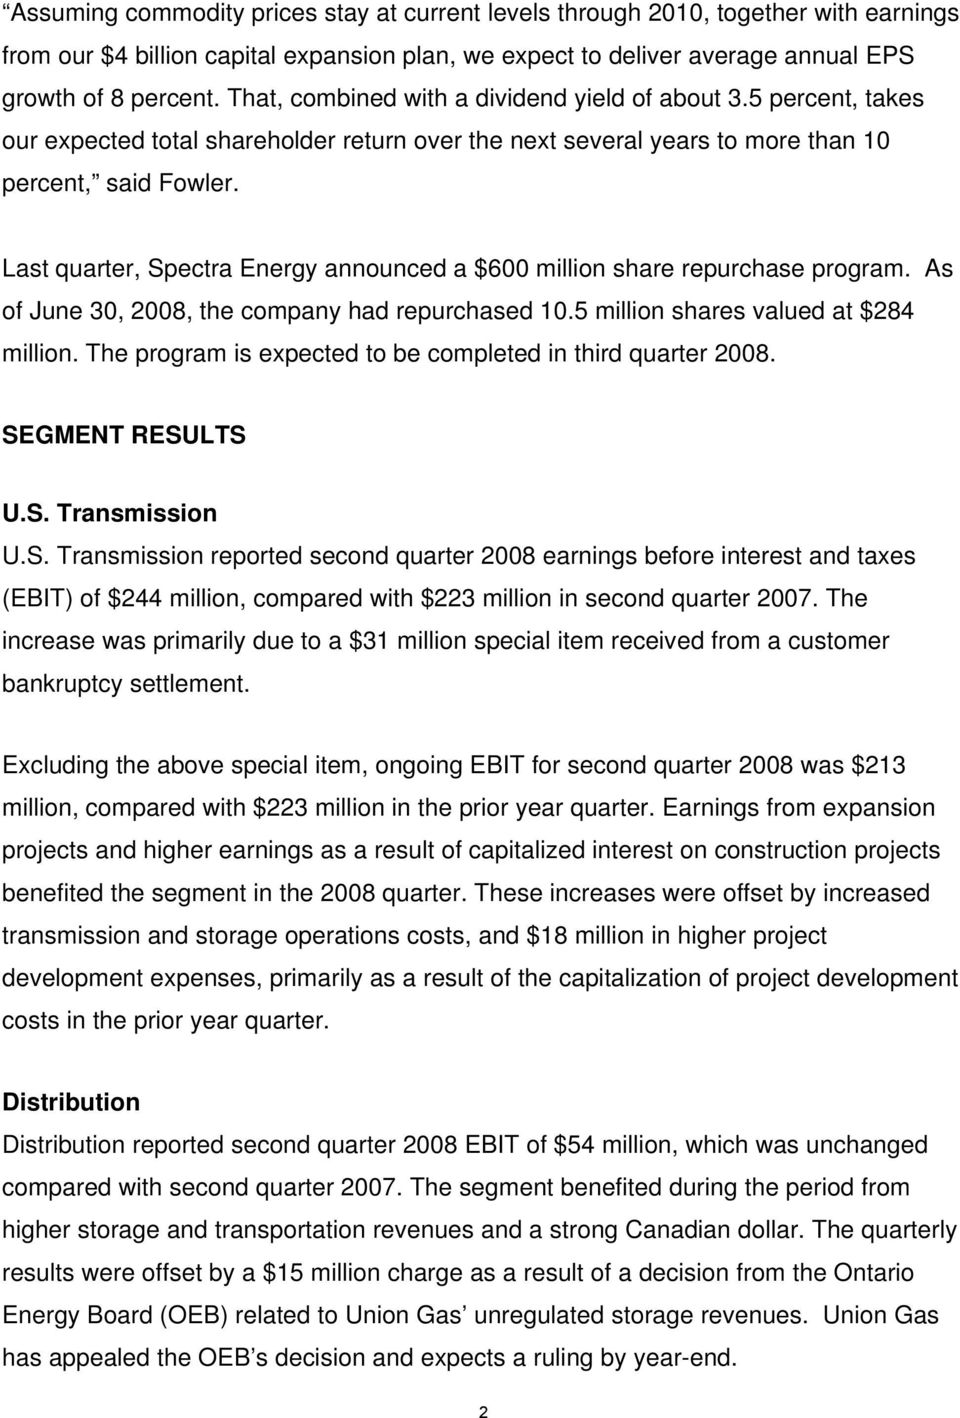 Last quarter, Spectra Energy announced a $600 million share repurchase program. As of June 30, 2008, the company had repurchased 10.5 million shares valued at $284 million.